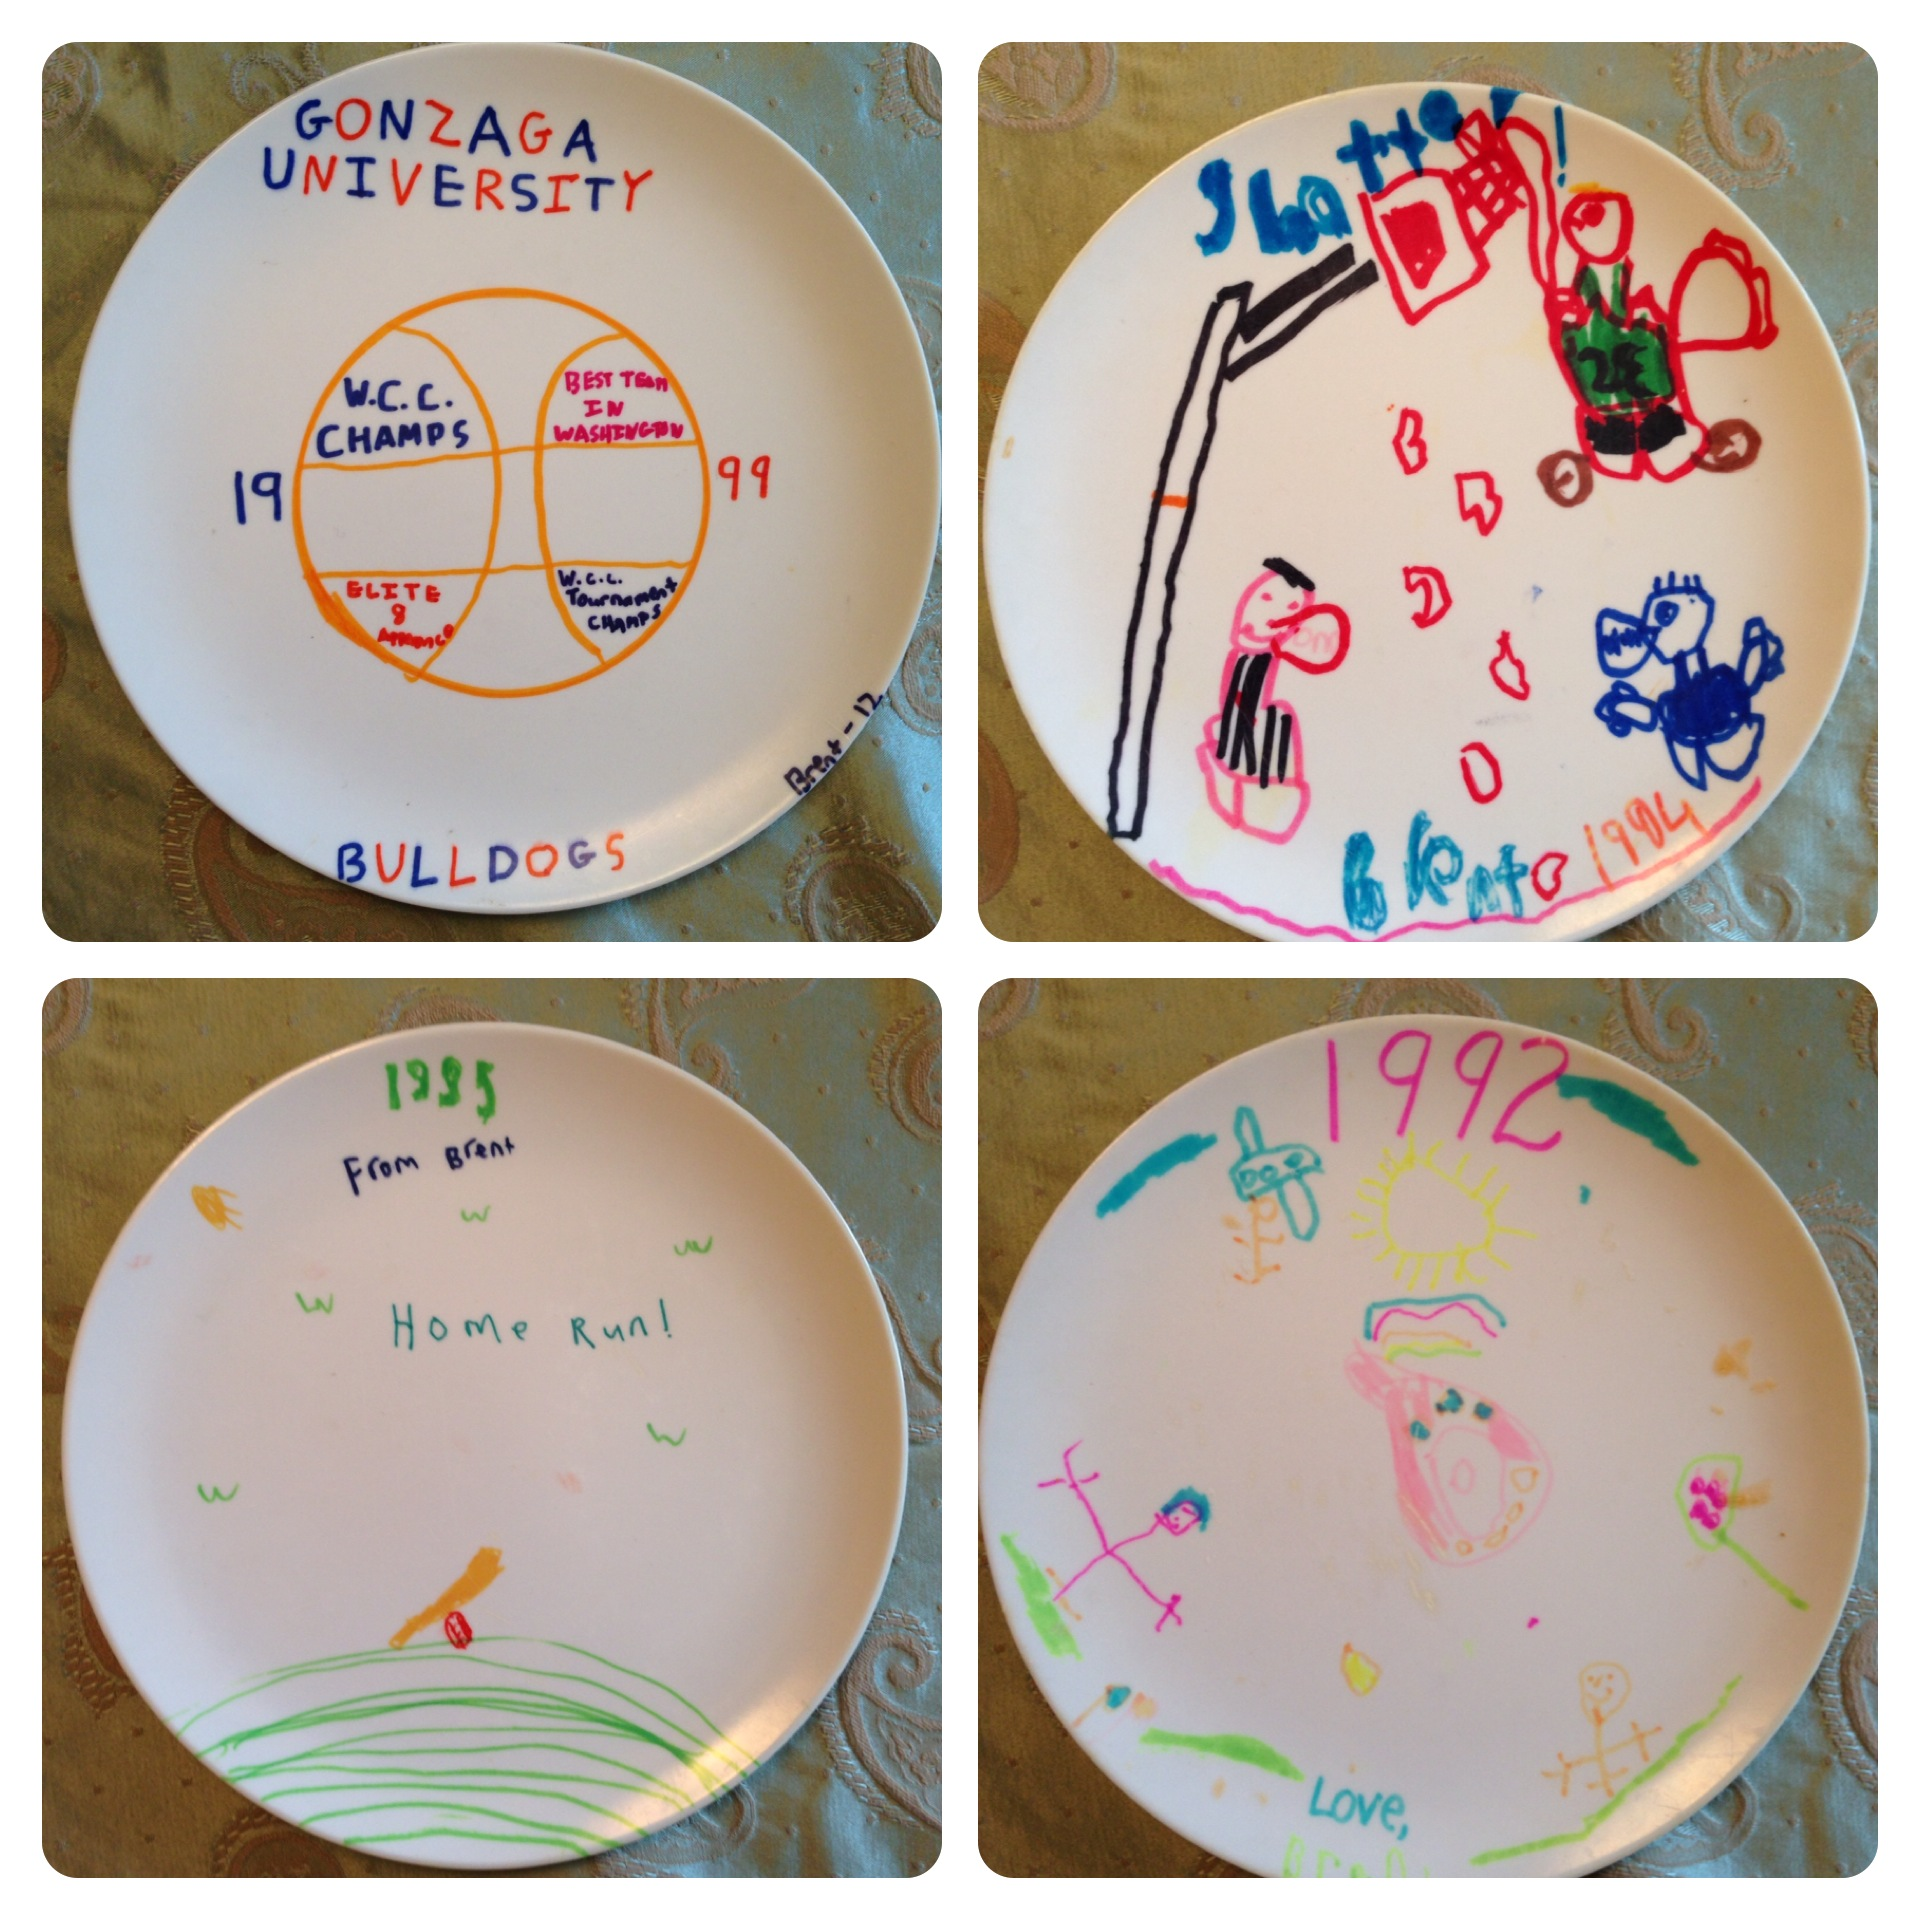 Some of the plates yours truly created (at no time have I ever claimed to have even a speck of artistic ability).